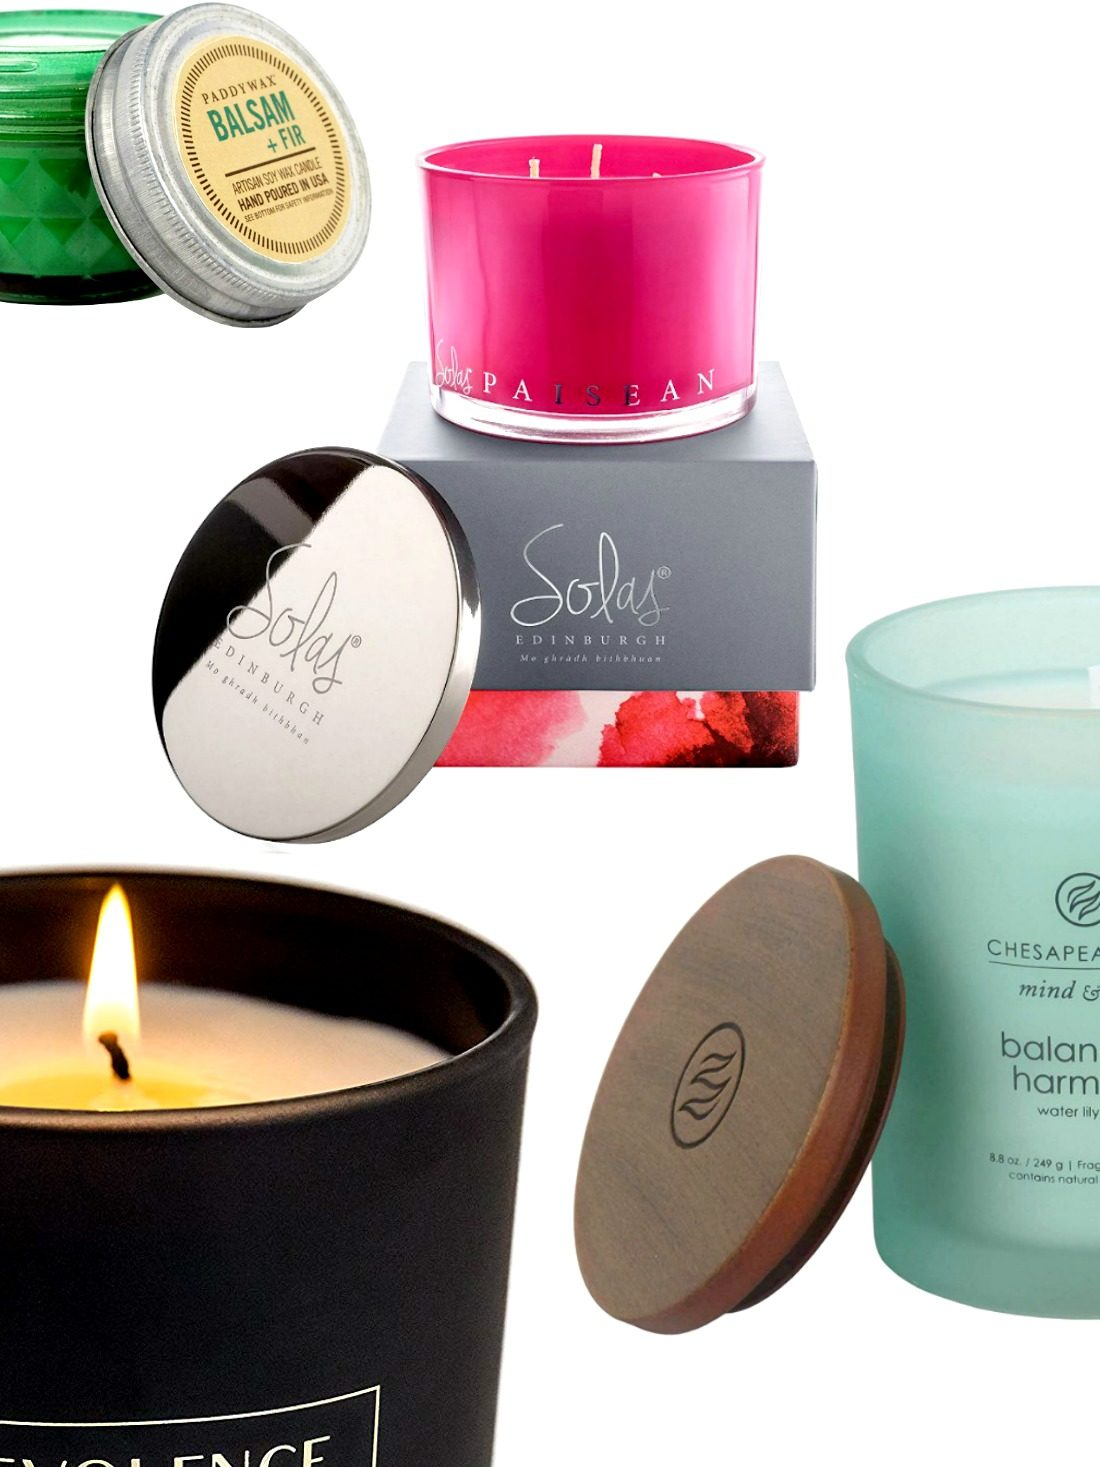 Not feeling like your usual self, is your recent candle gone hay-wire or hating winter at the moment? We've got 10 best scented candles that will have you sorted in no time!